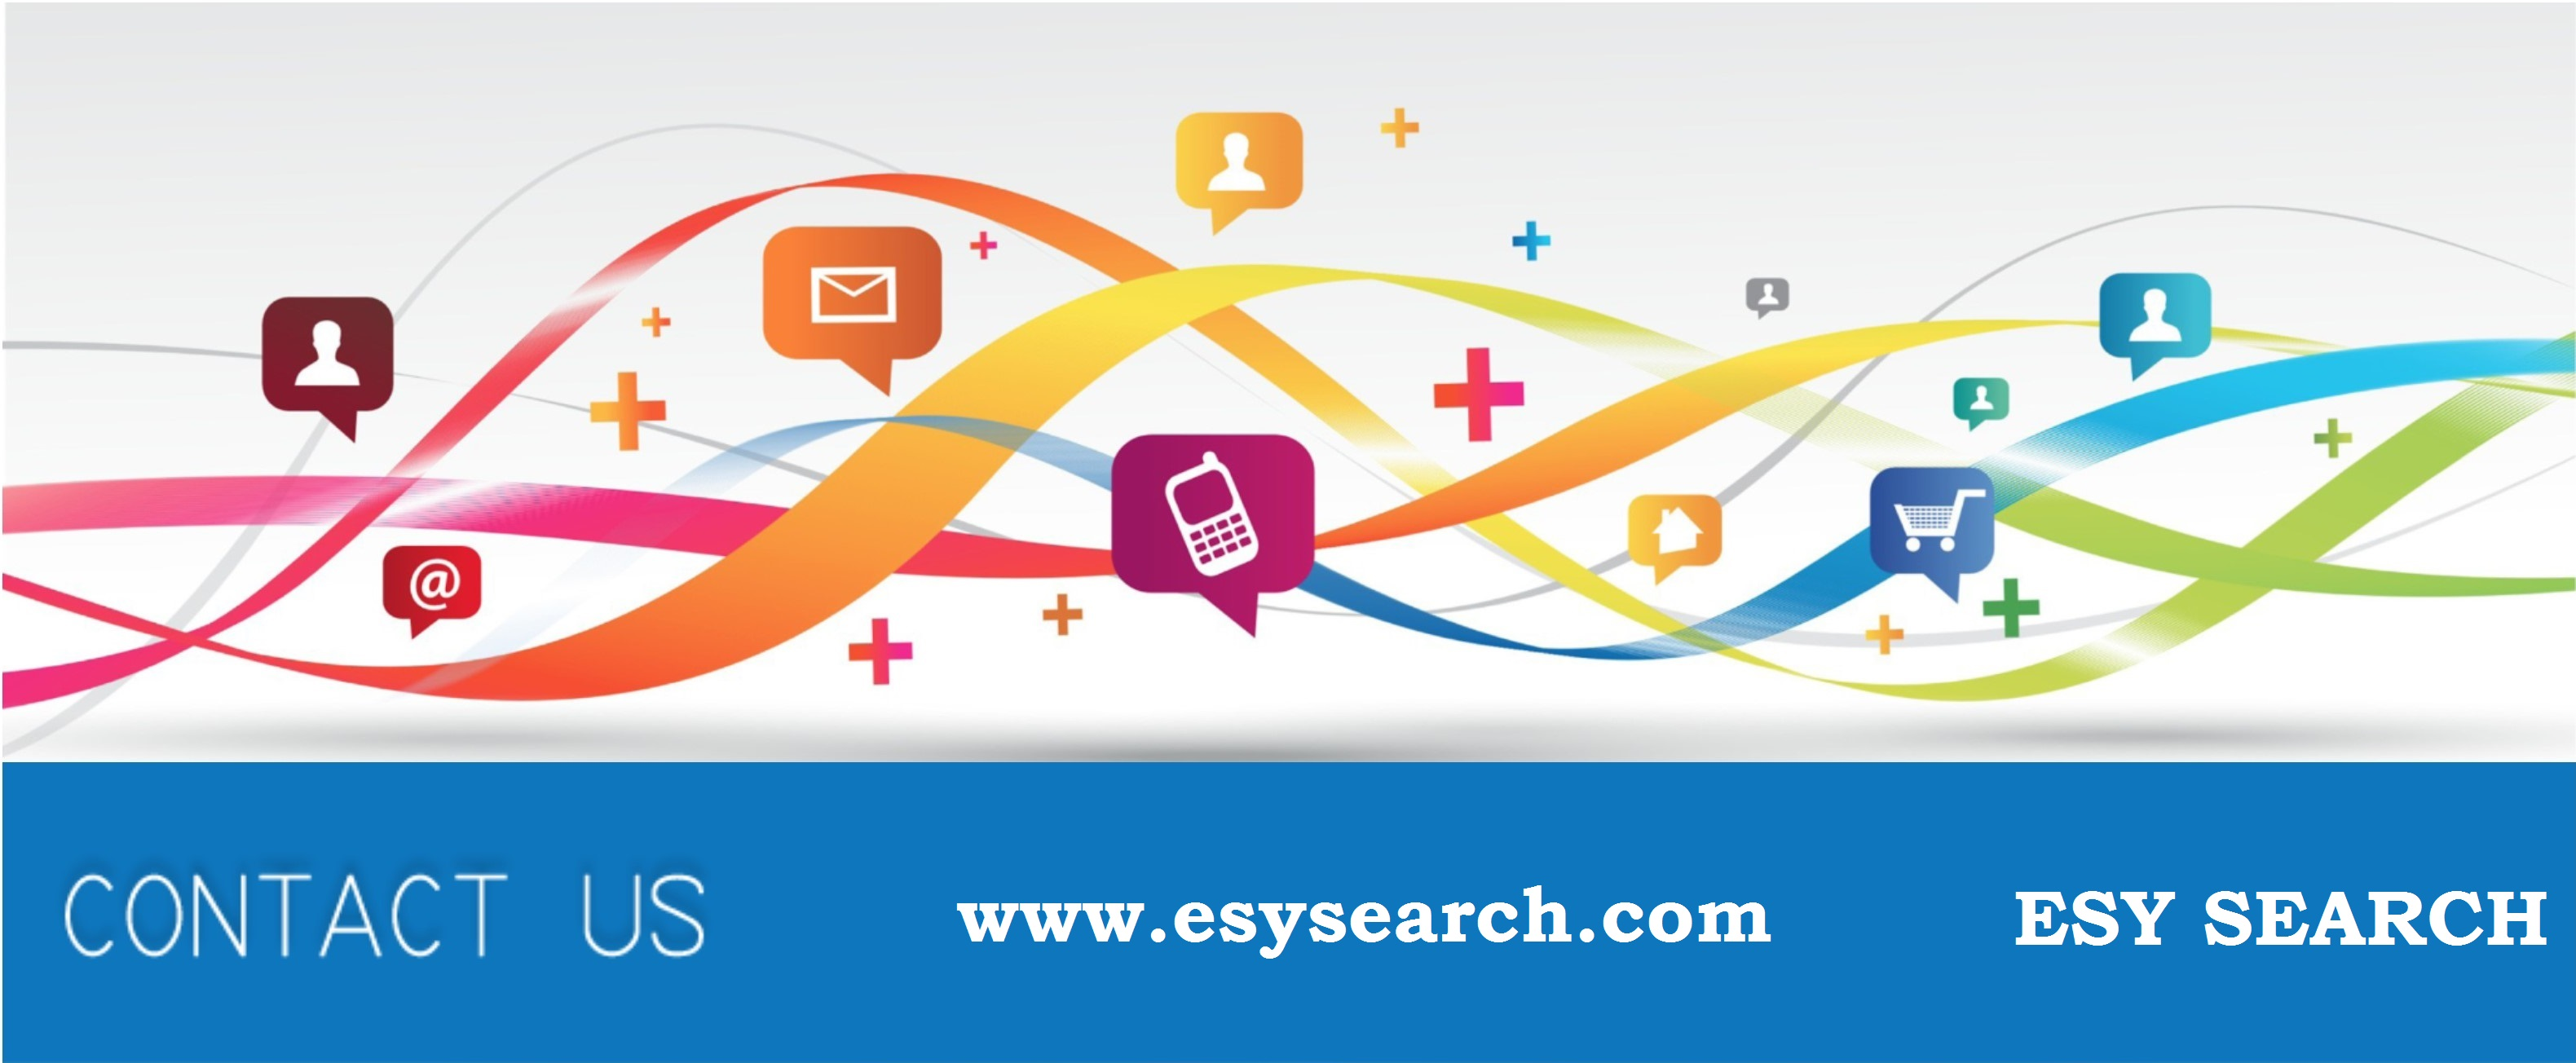 Esy Search Contact Banner